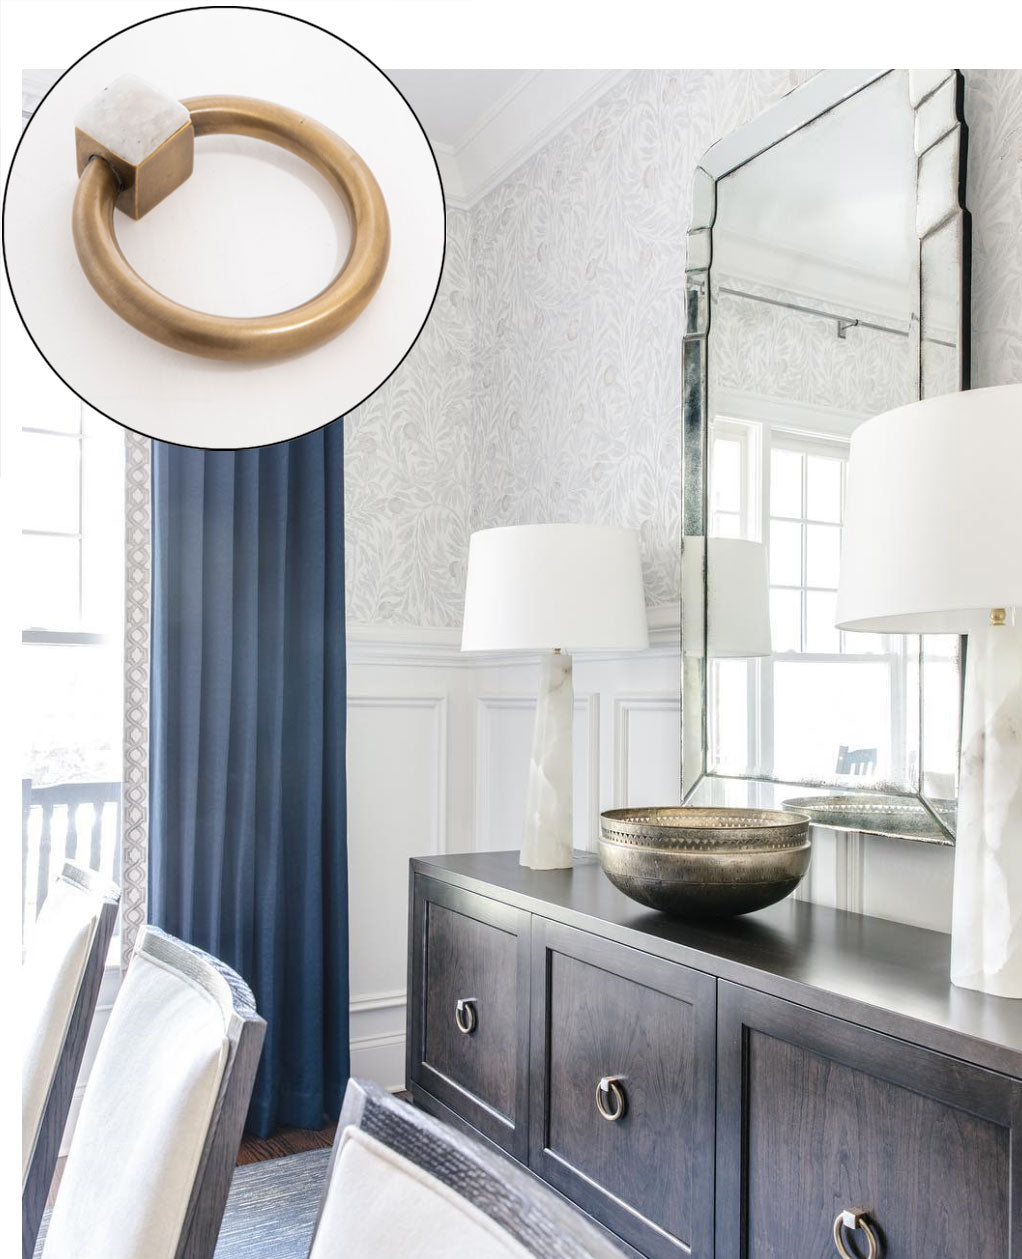 Taupe & Blue Dining Room with Porter Ring Pull in Antique Brass & Moonstone